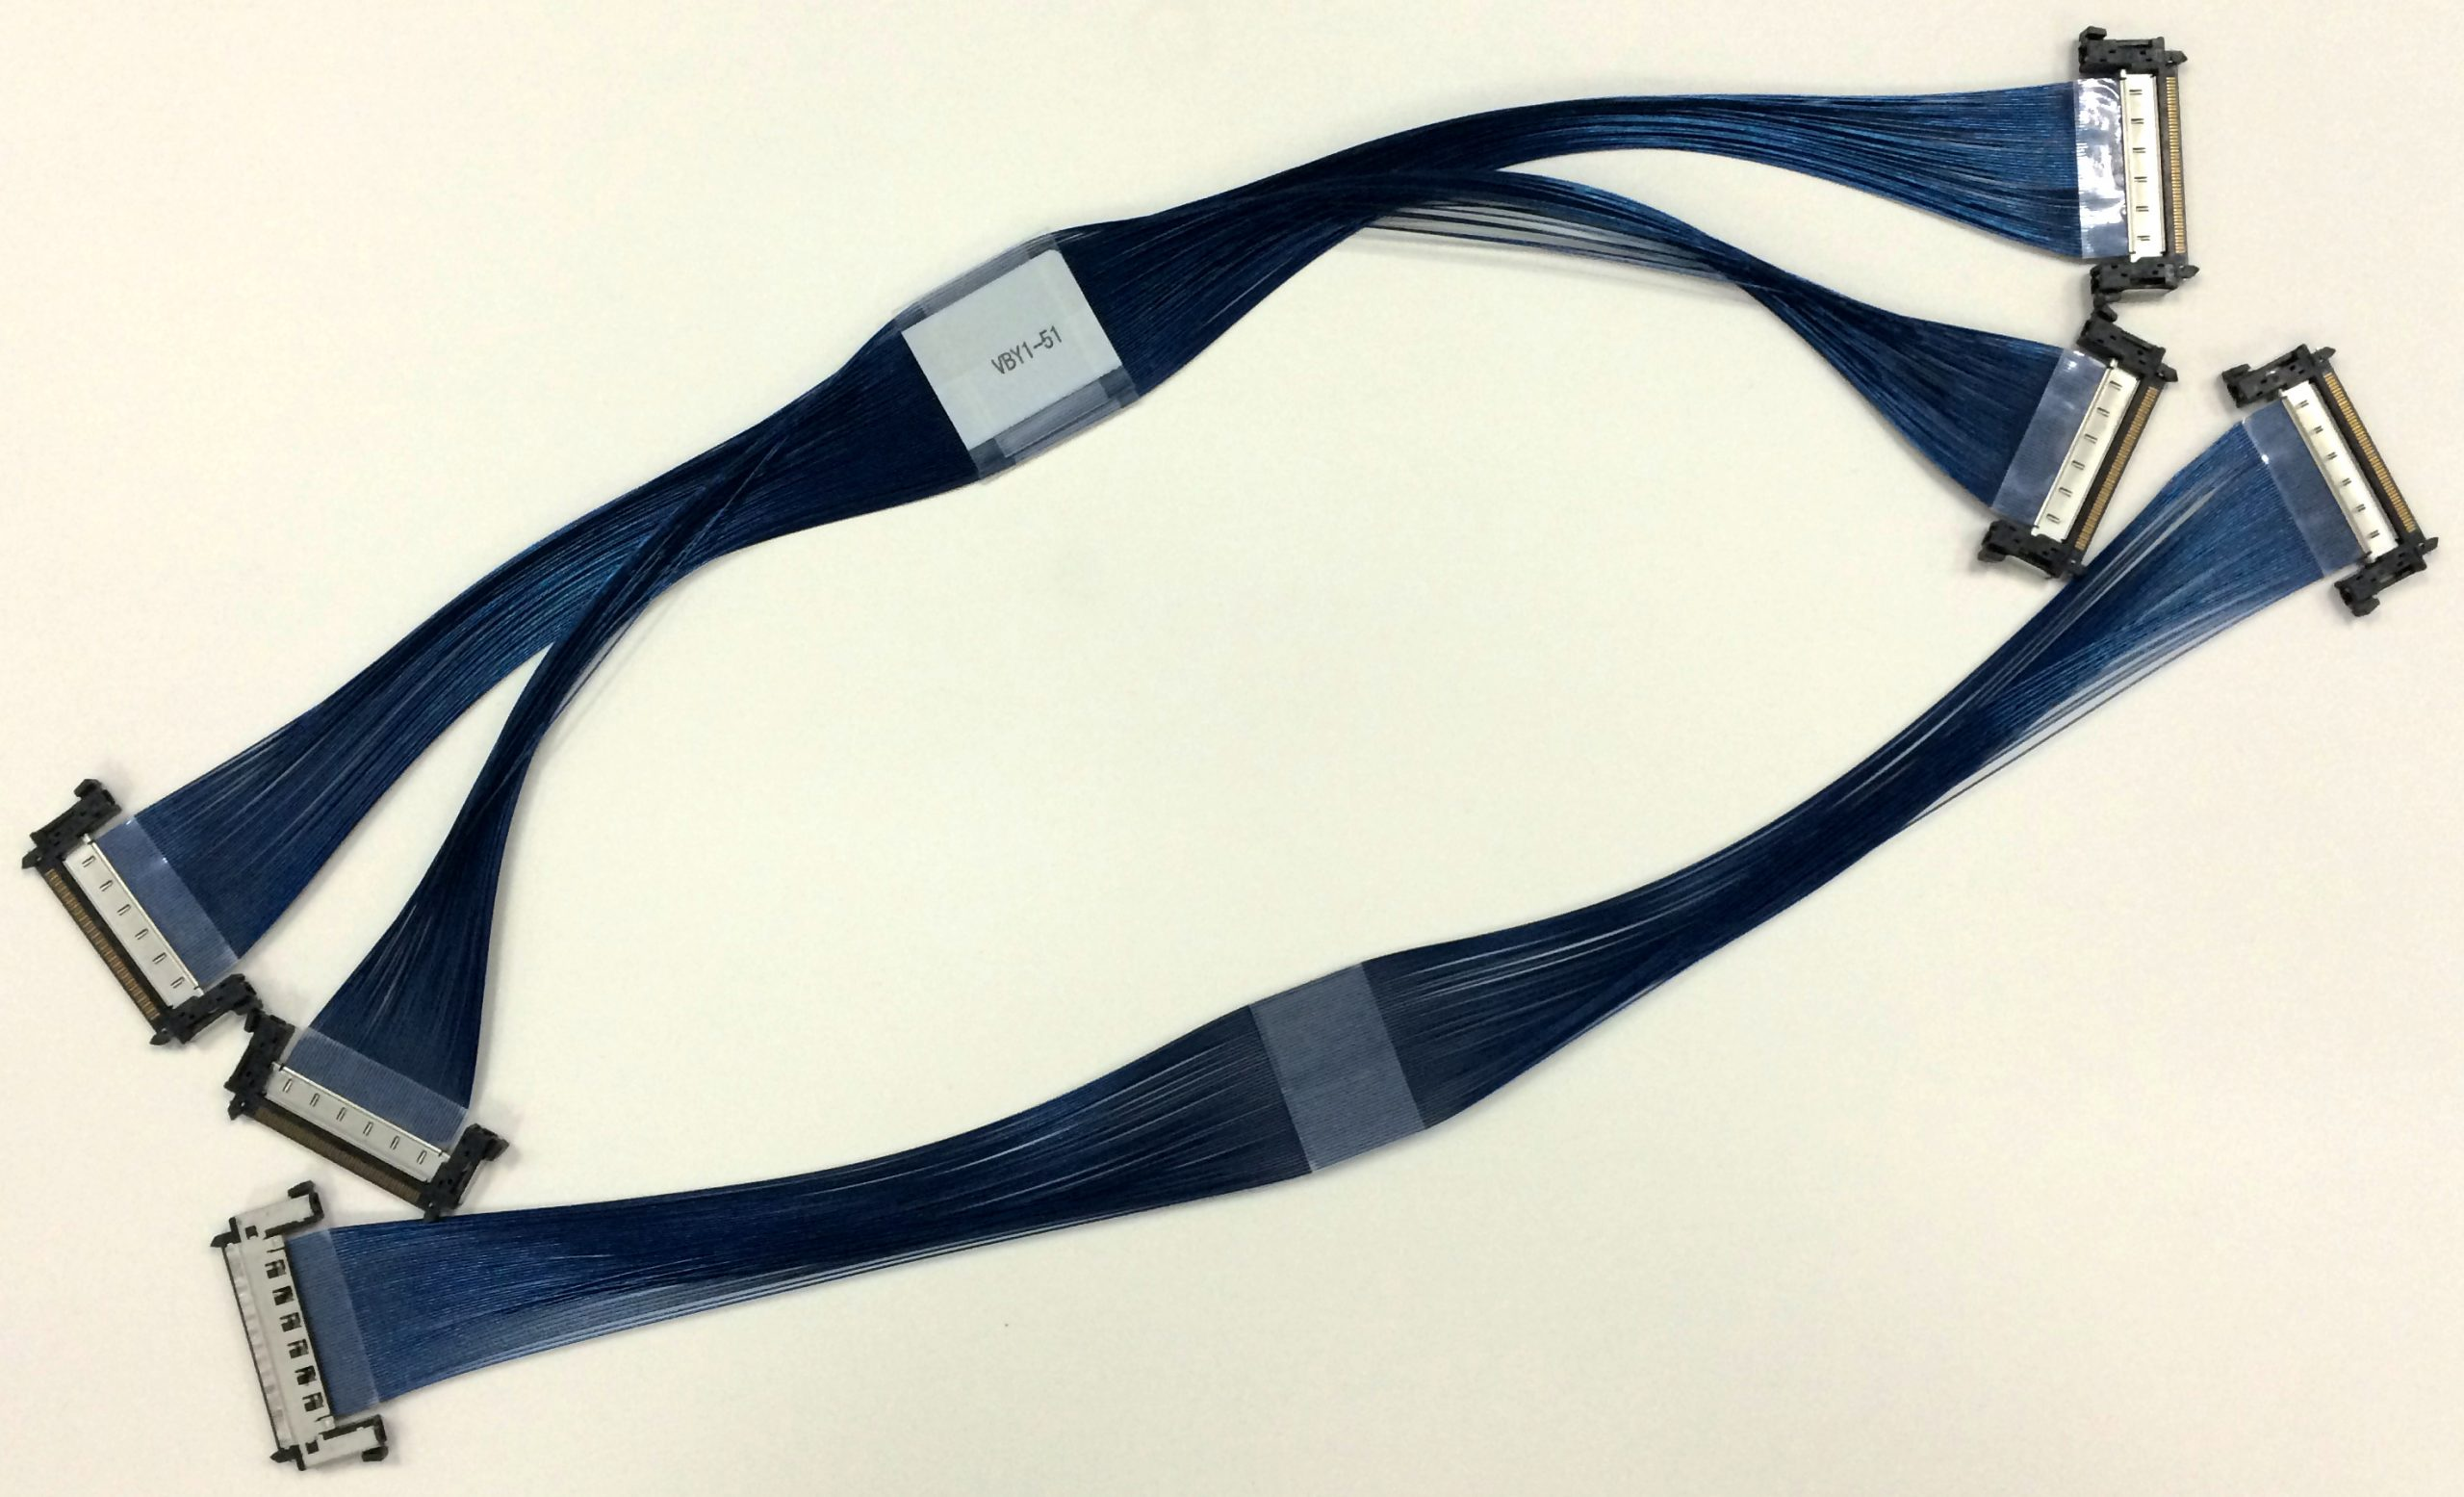 8Lane V-by-One HS LVDS FMC Card Product appearance - Cable for V-by-One HS 51pin